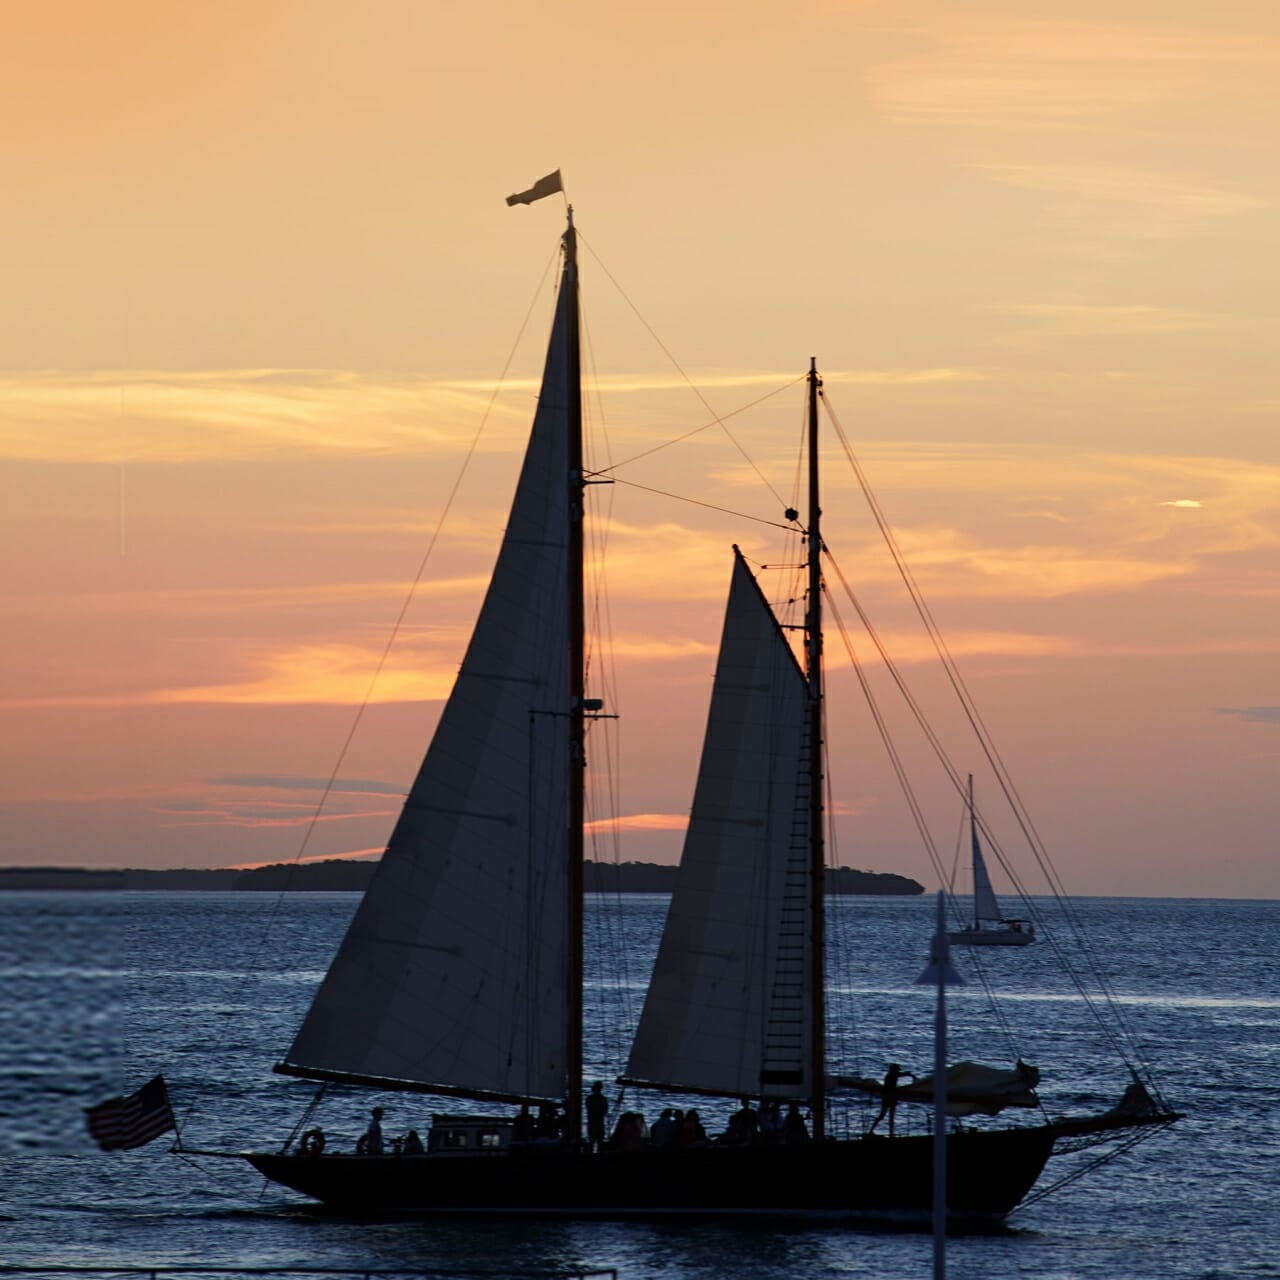 A sail boat on the water at sunset.